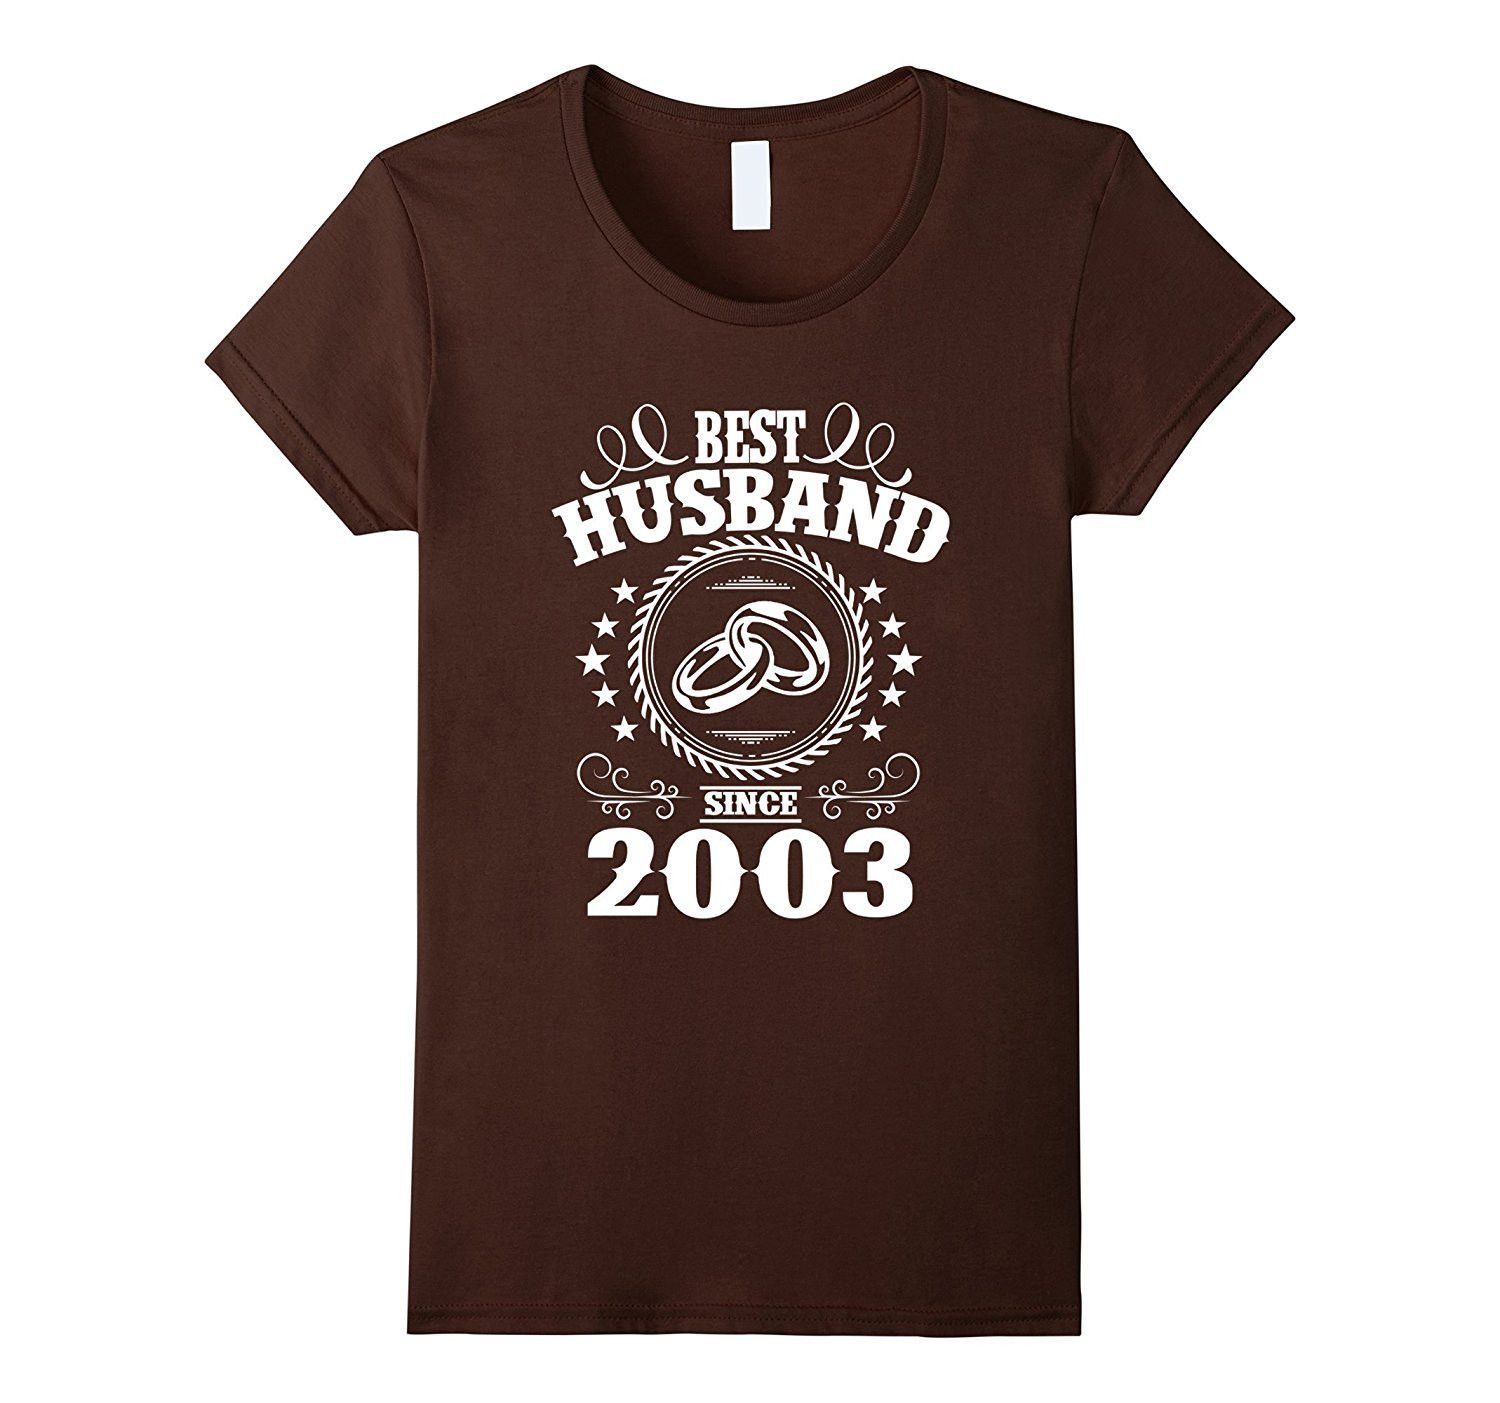 14th Wedding Anniversary TShirts For Husband From Wife